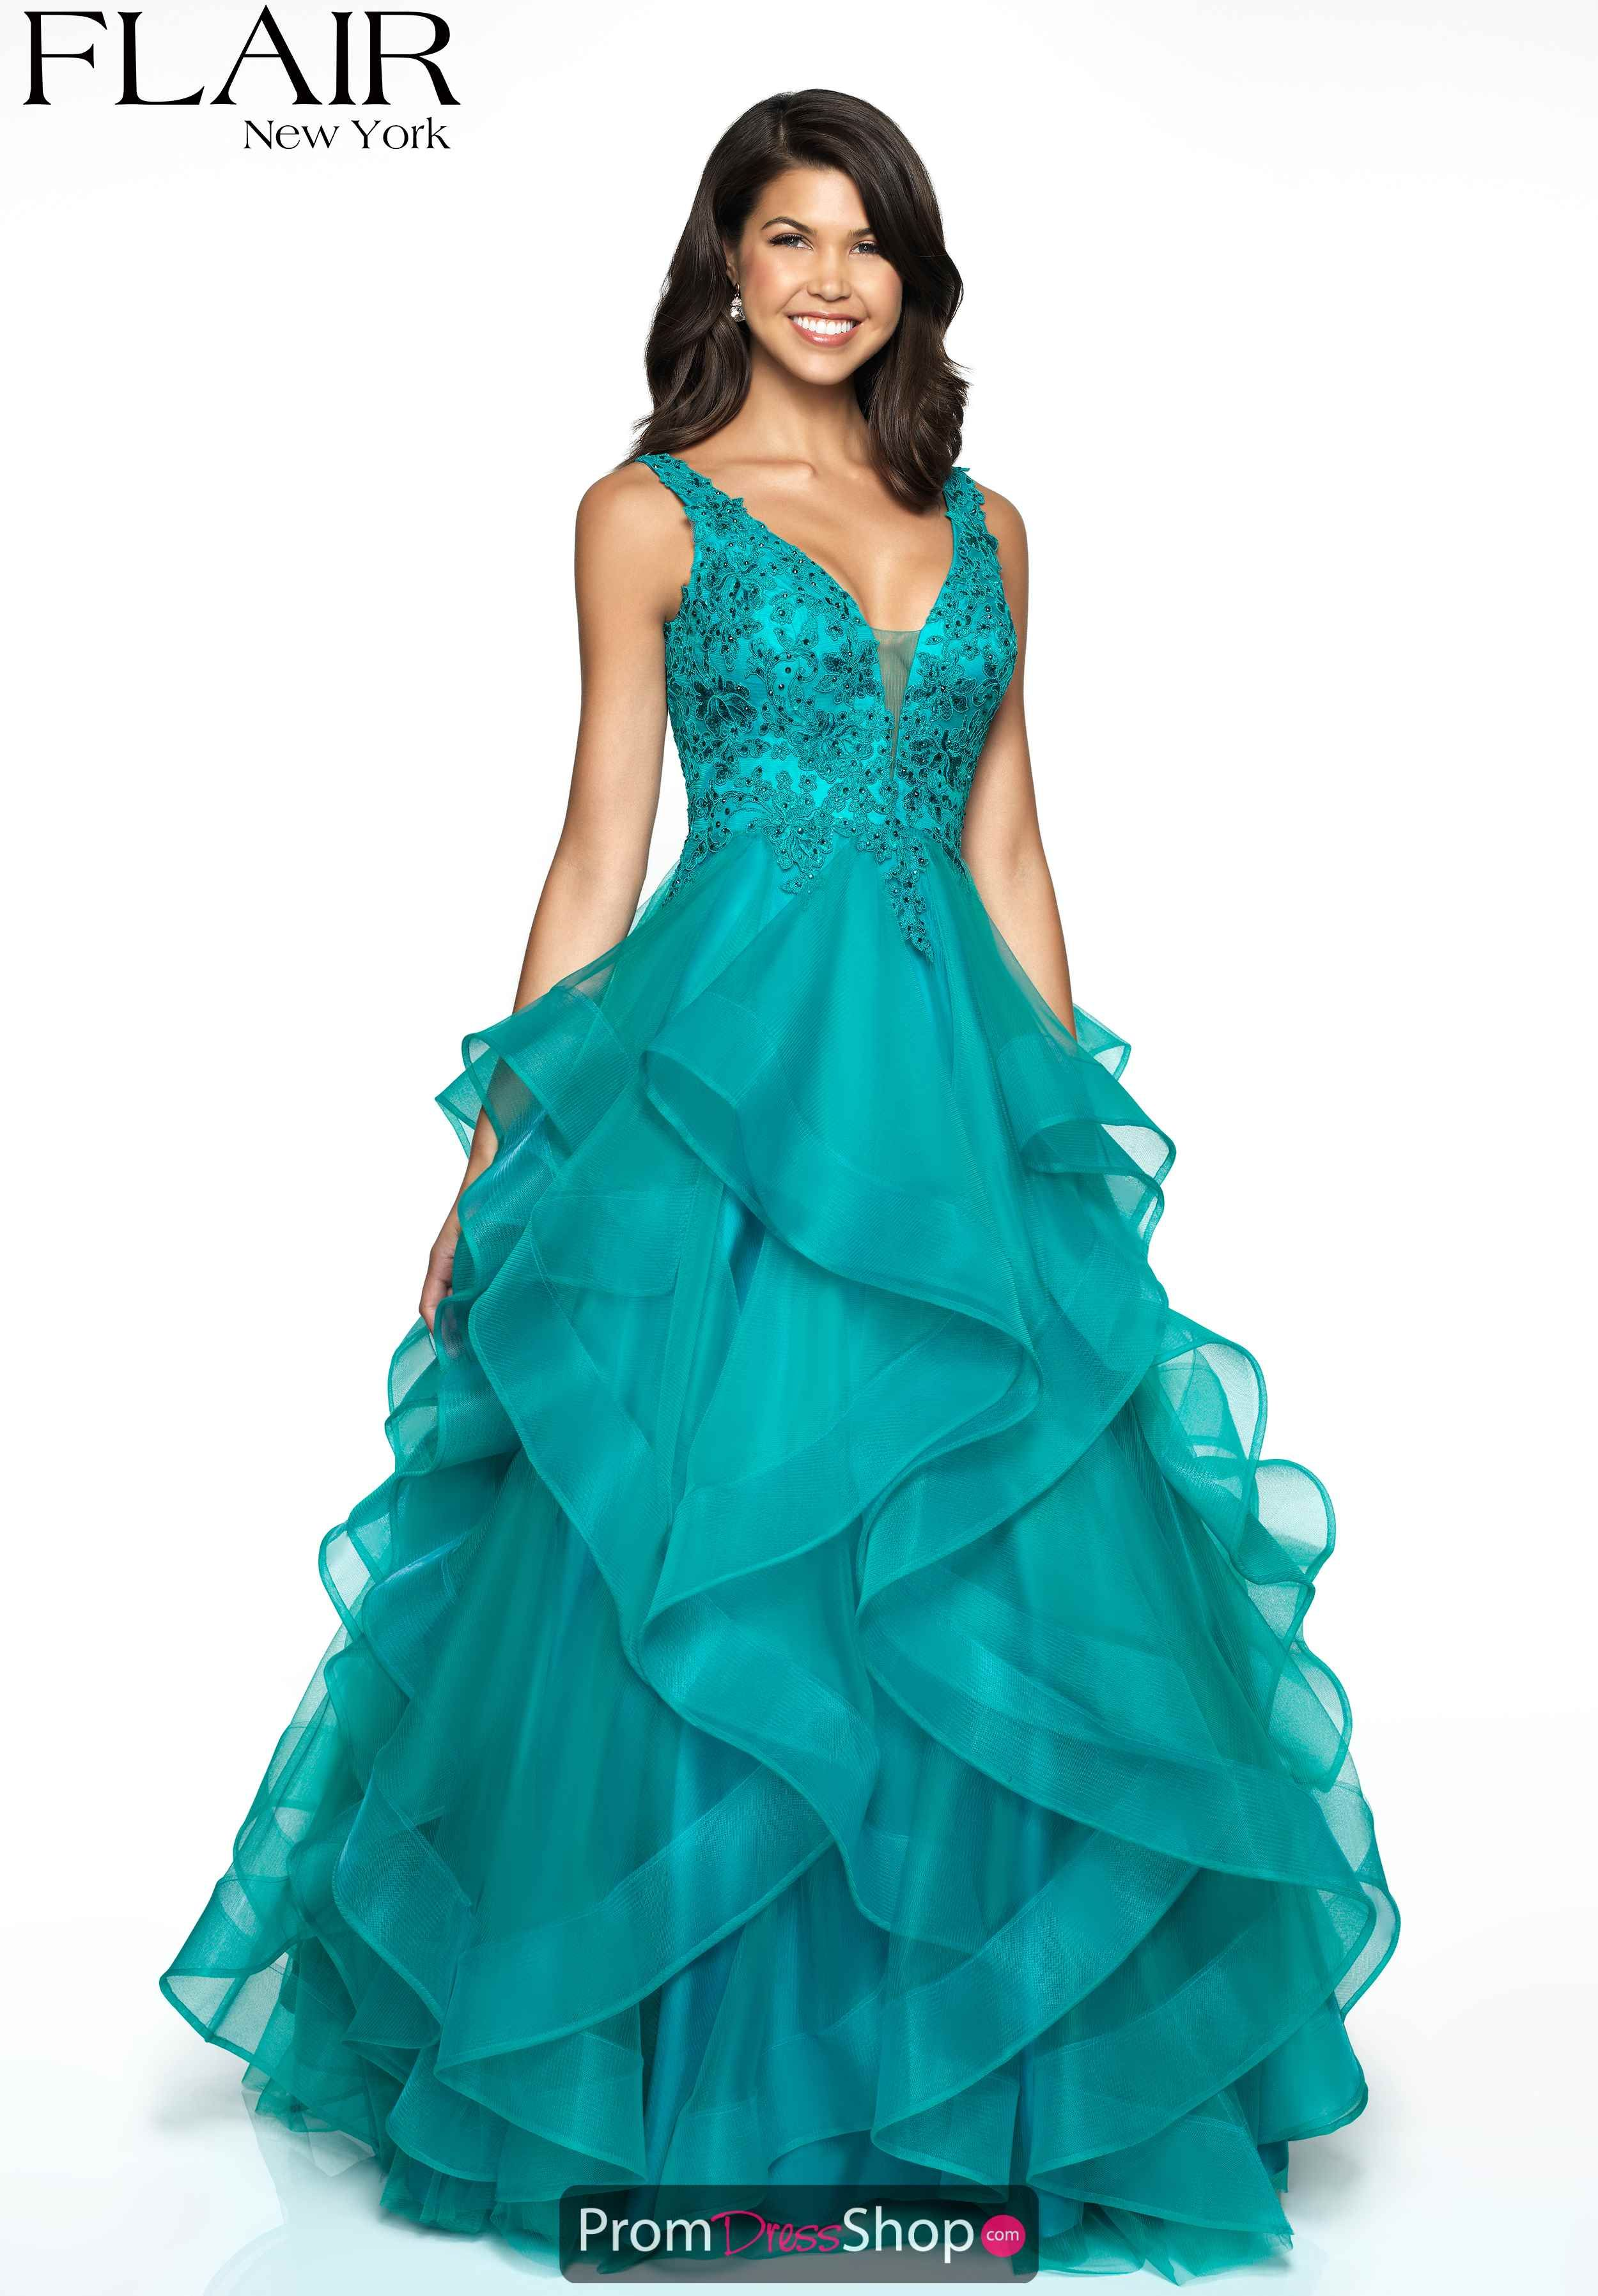 32b24b2b7106 Teal High Fashion Trends, Prom Dress Stores, Fitted Bodice, Lace Detail,  Green